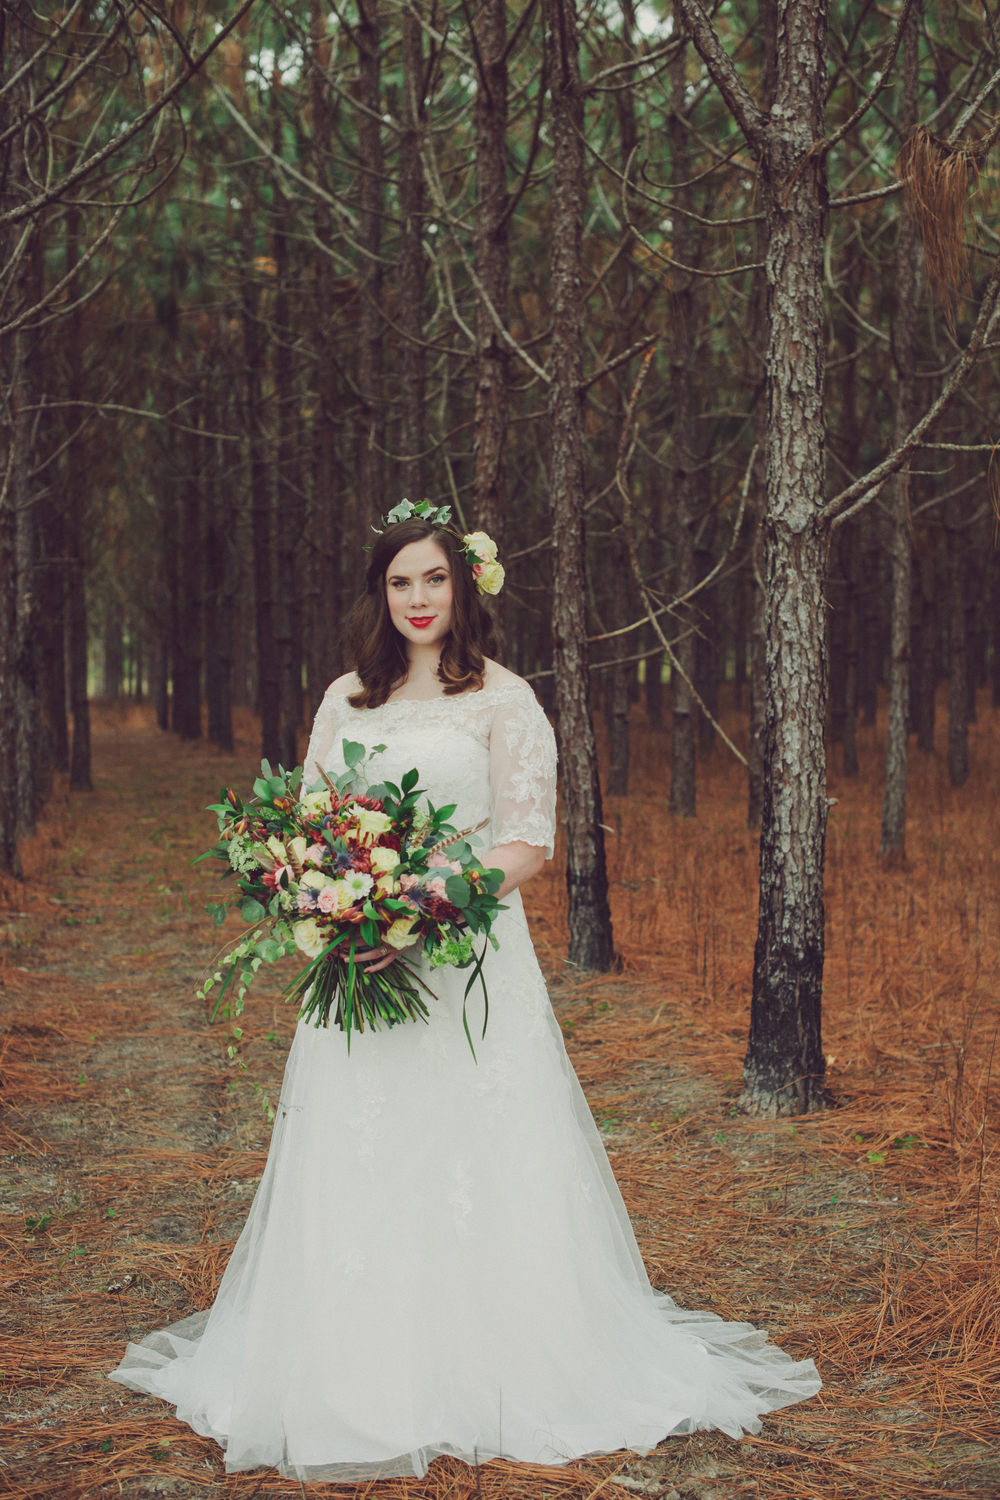 Ng-Photography-backyard-wedding-royal-hair-and-makeup-ivory-and-beau-wedding-planning-wedding-flowers-savannah-florist-savannah-flowers-savannah-weddings-savannah-wedding-savannah-event-planner-savannah-wedding-planner-savannah-rustic-wedding-10.jpg